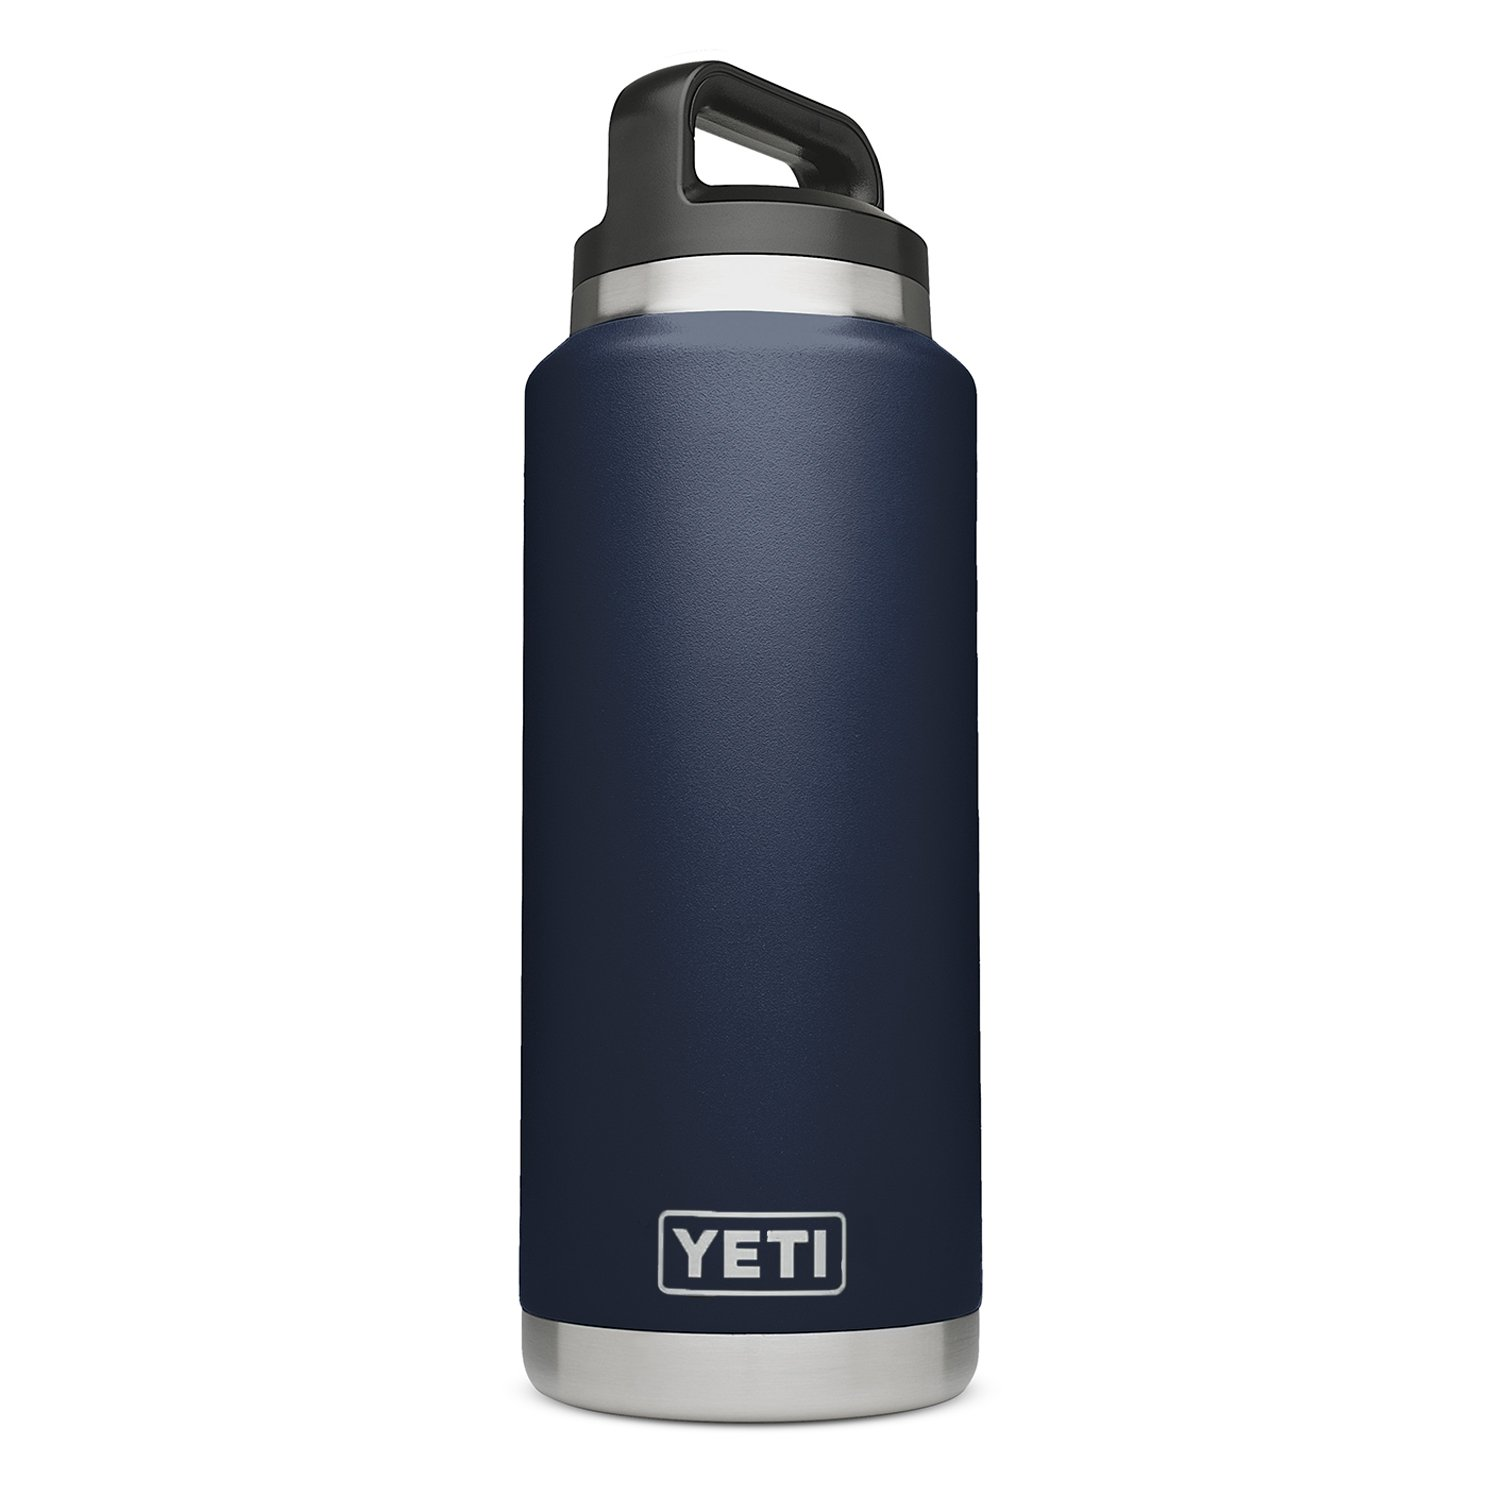 YETI Rambler 36 oz Stainless Steel Vacuum Insulated Bottle with Cap, Navy